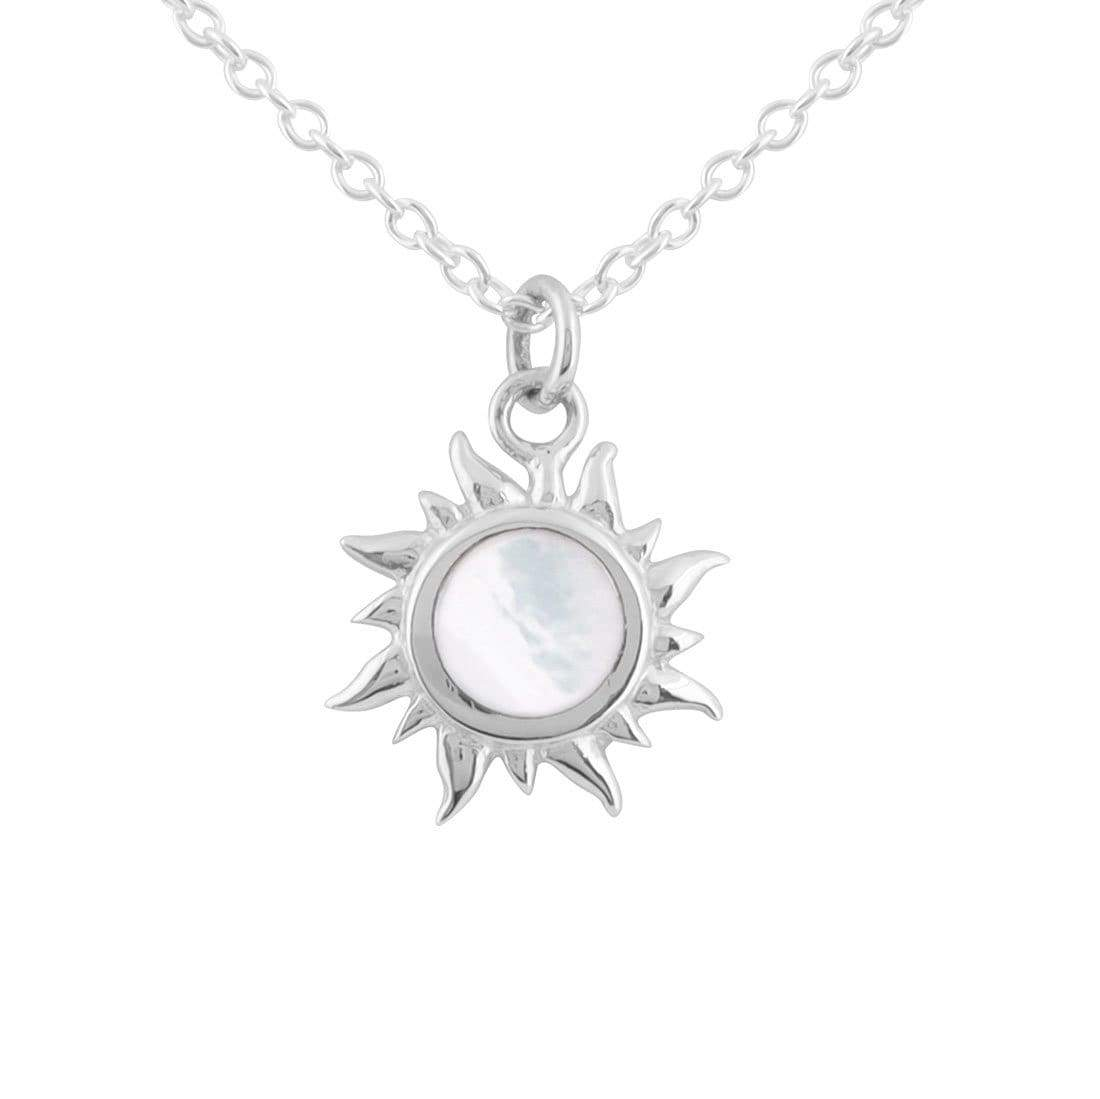 Midsummer Star Necklaces Iridescent Dawn Necklace